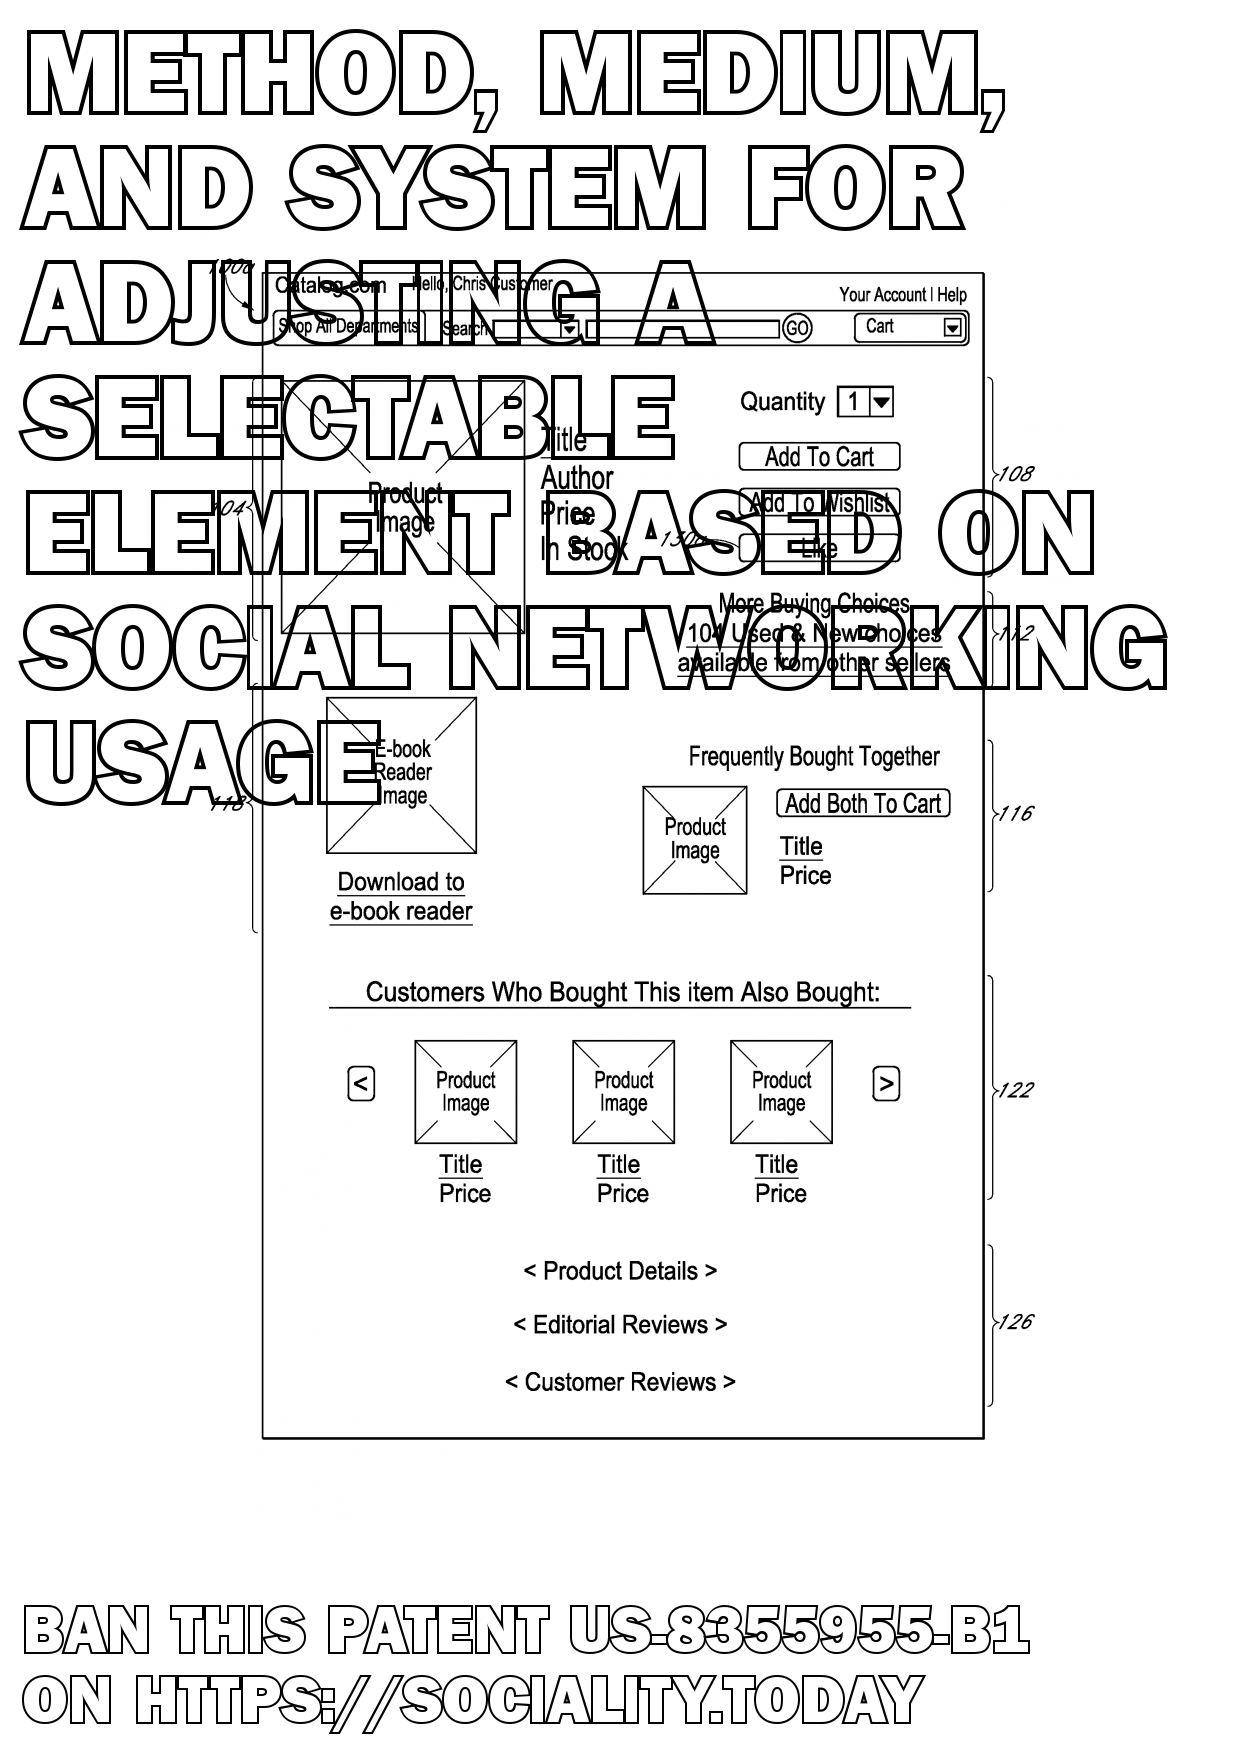 Method, medium, and system for adjusting a selectable element based on social networking usage  - US-8355955-B1